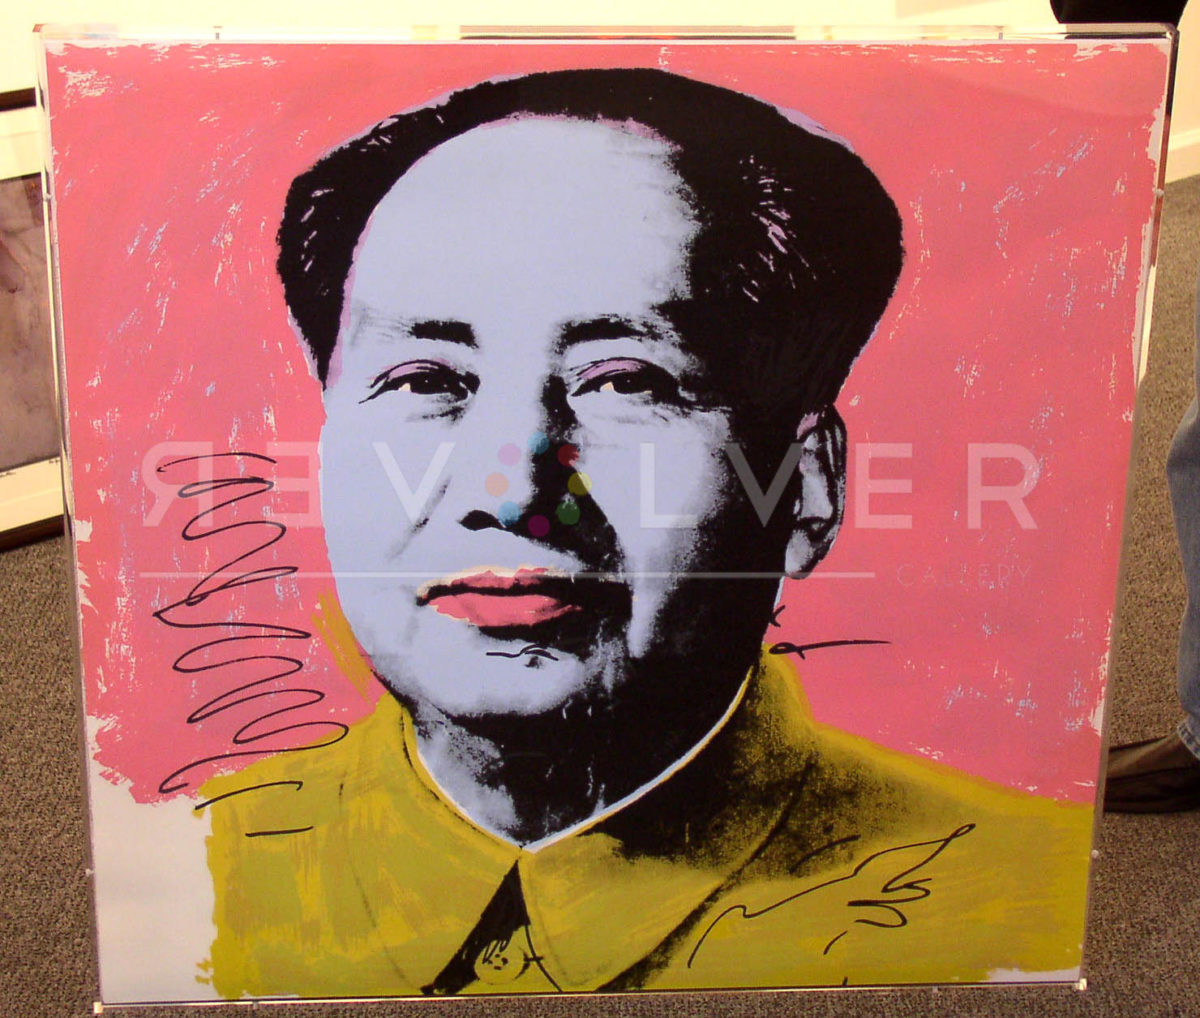 Mao pink, yellow, blue, by Andy Warhol, in frame.